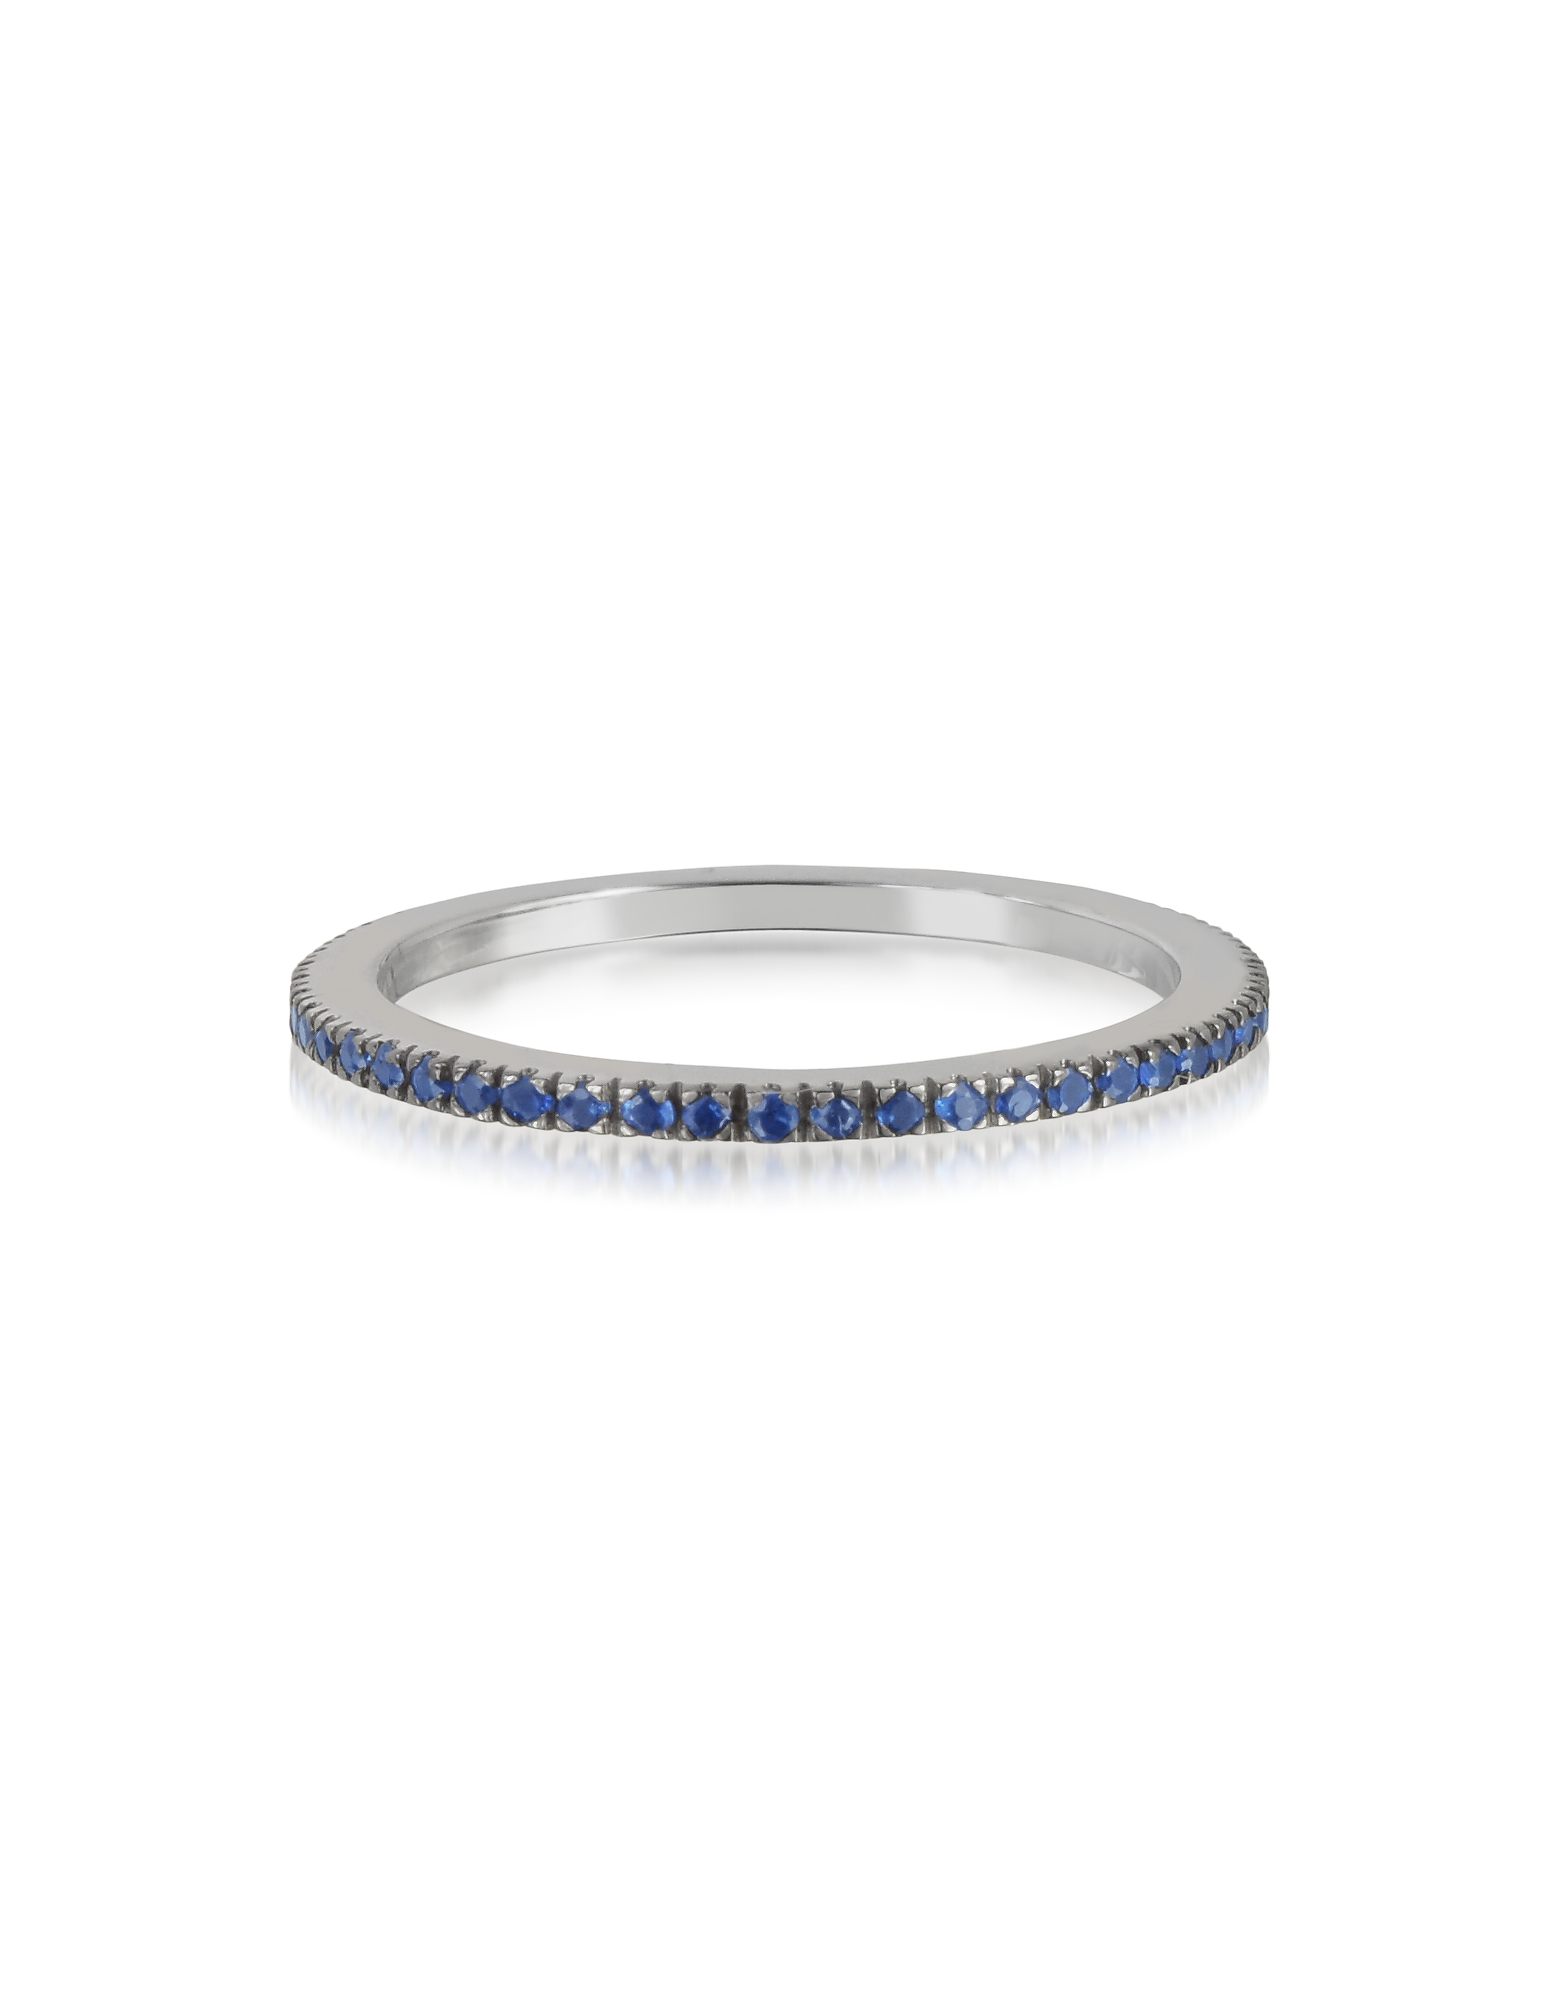 Forzieri Designer Rings, Natural Blue Sapphire Eternity Band Ring